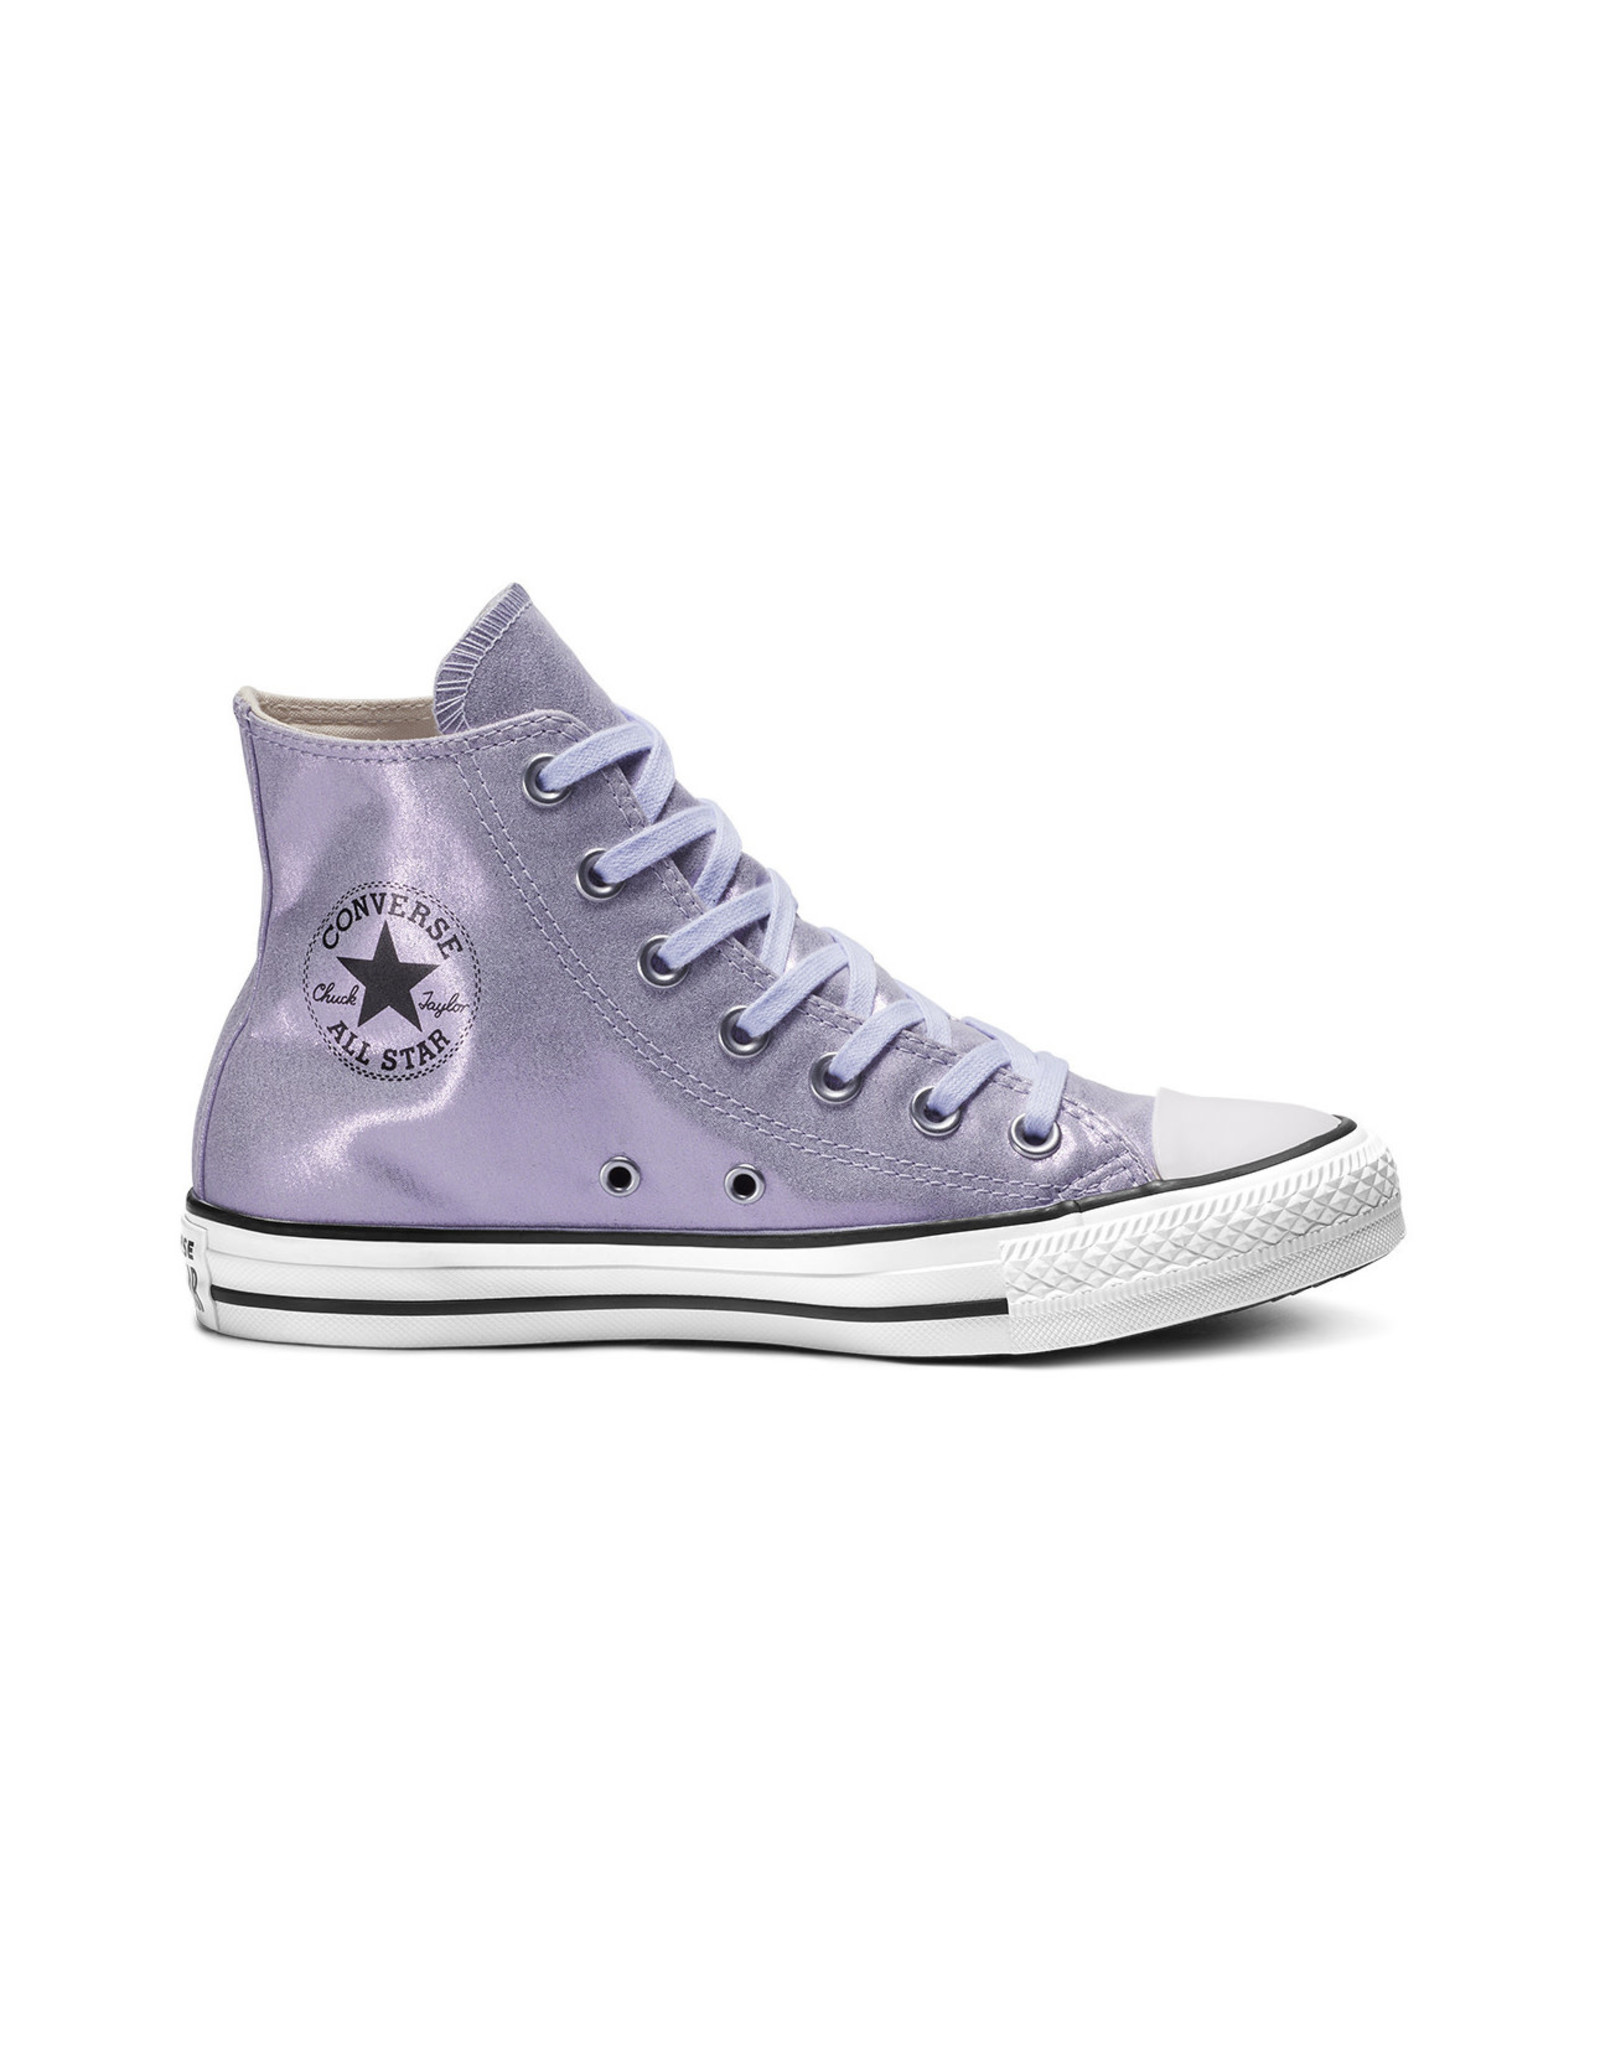 CONVERSE CHUCK TAYLOR ALL STAR HI OXYGEN PURPLE/BLACK/WHITE C19OP-563419C